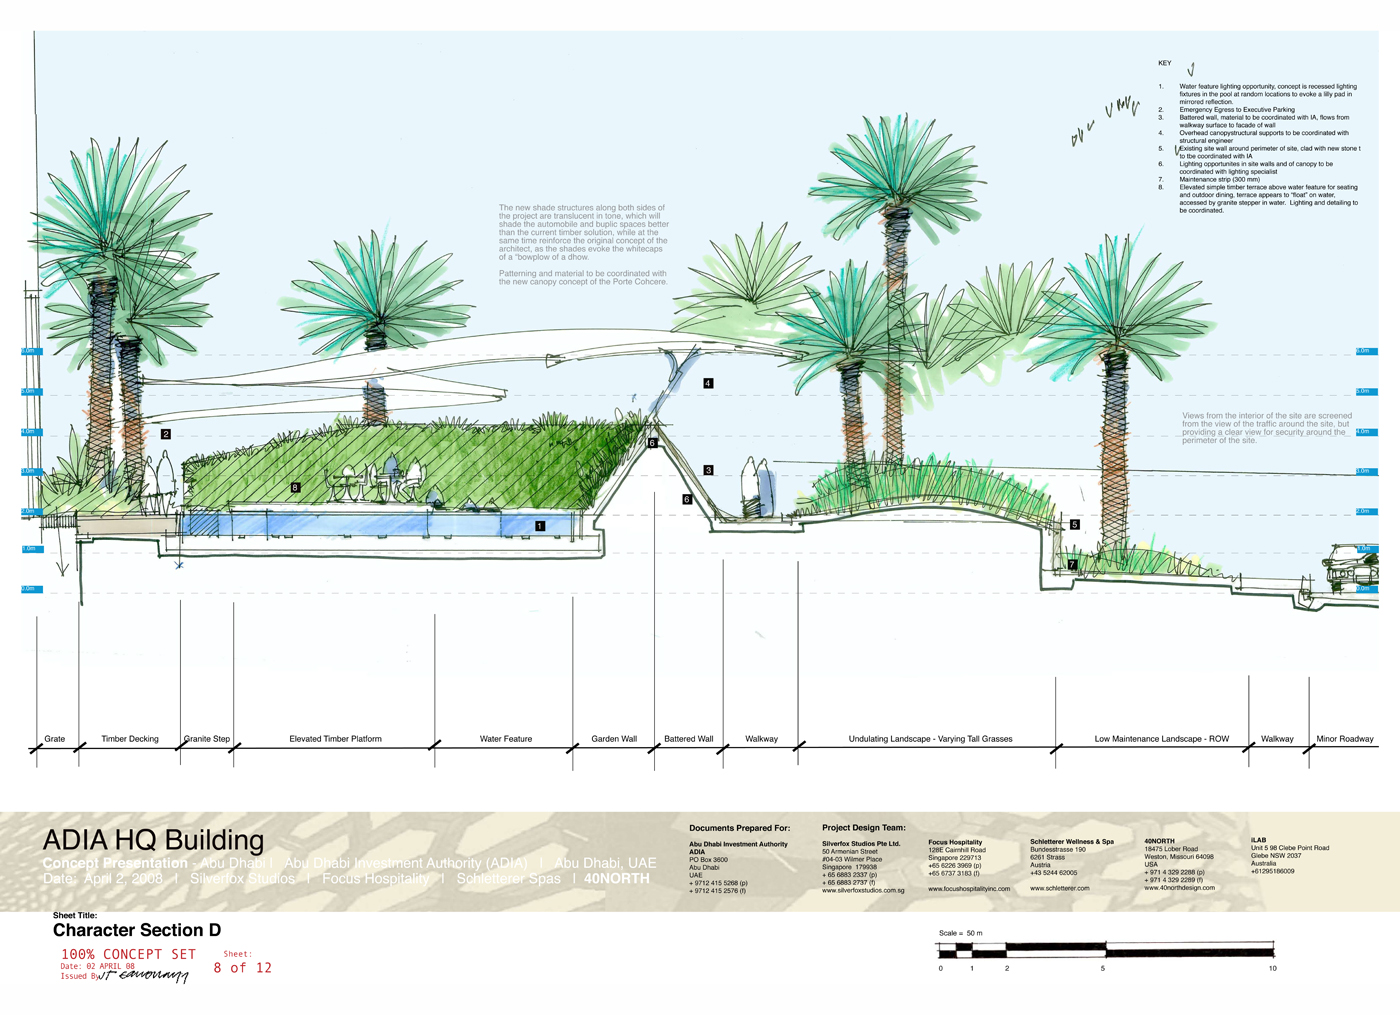 40NORTH Landscape Architects and Planners » ADIA